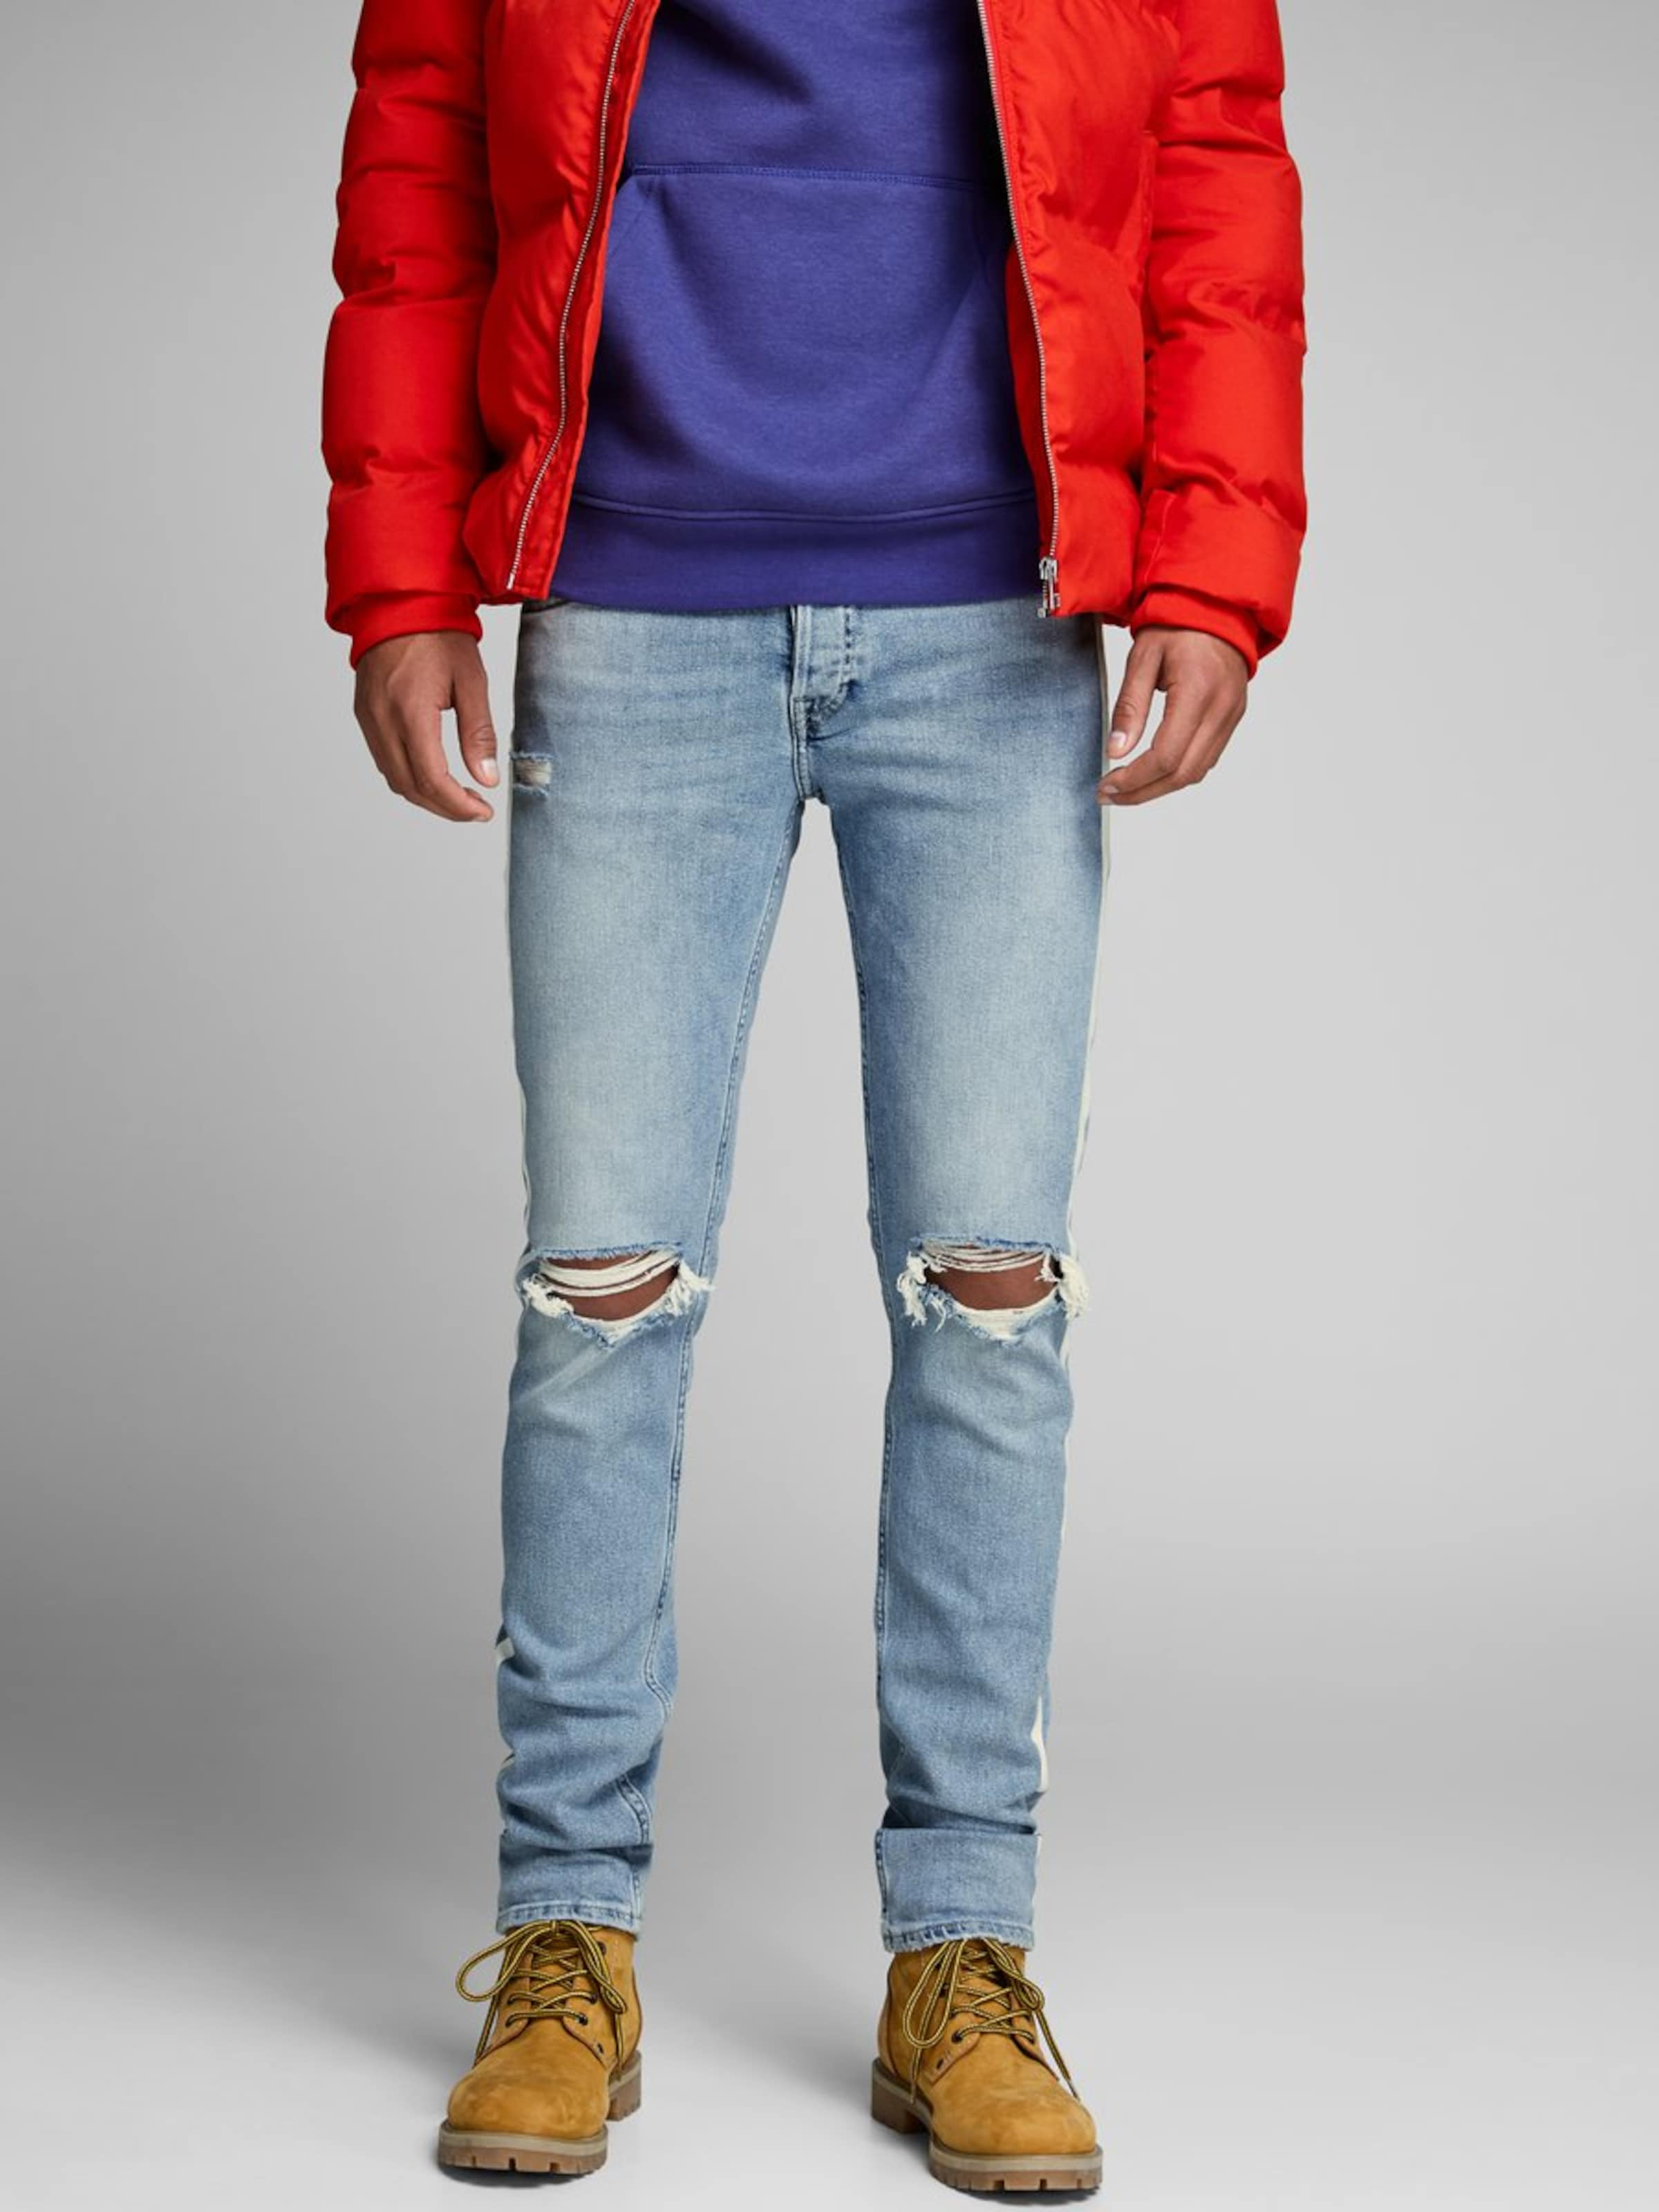 Jackamp; Jean 019' Denim Cj En Original 'glenn Jones Bleu 80NyOnwvmP